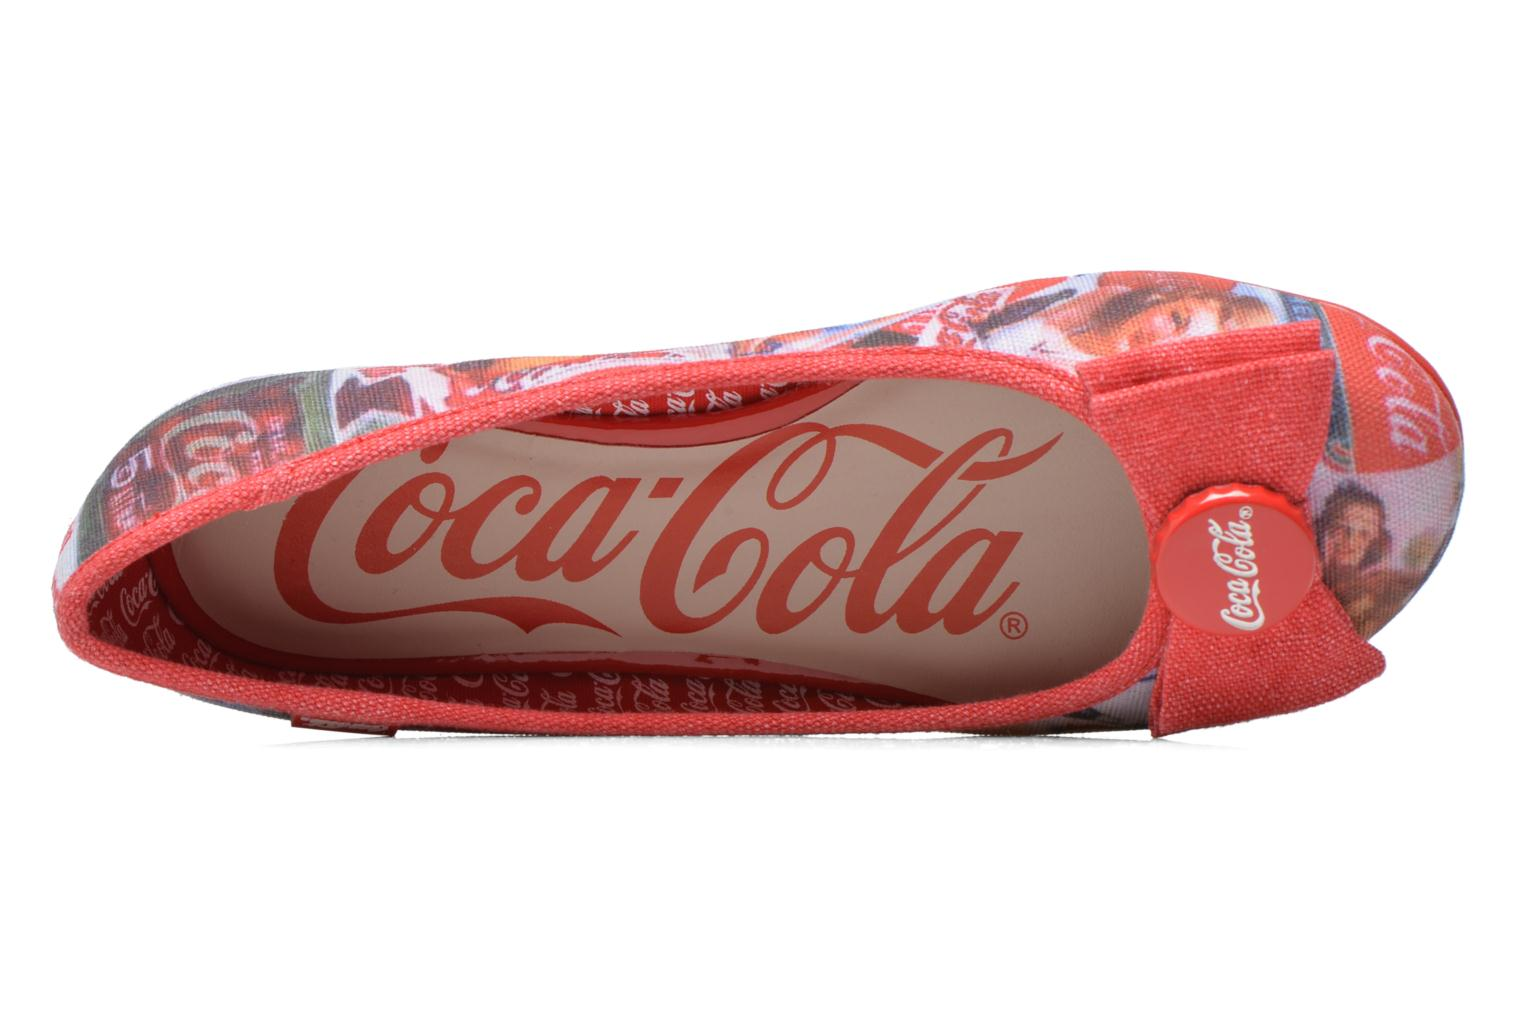 Ballet pumps Coca-cola shoes Tampinas Multicolor view from the left